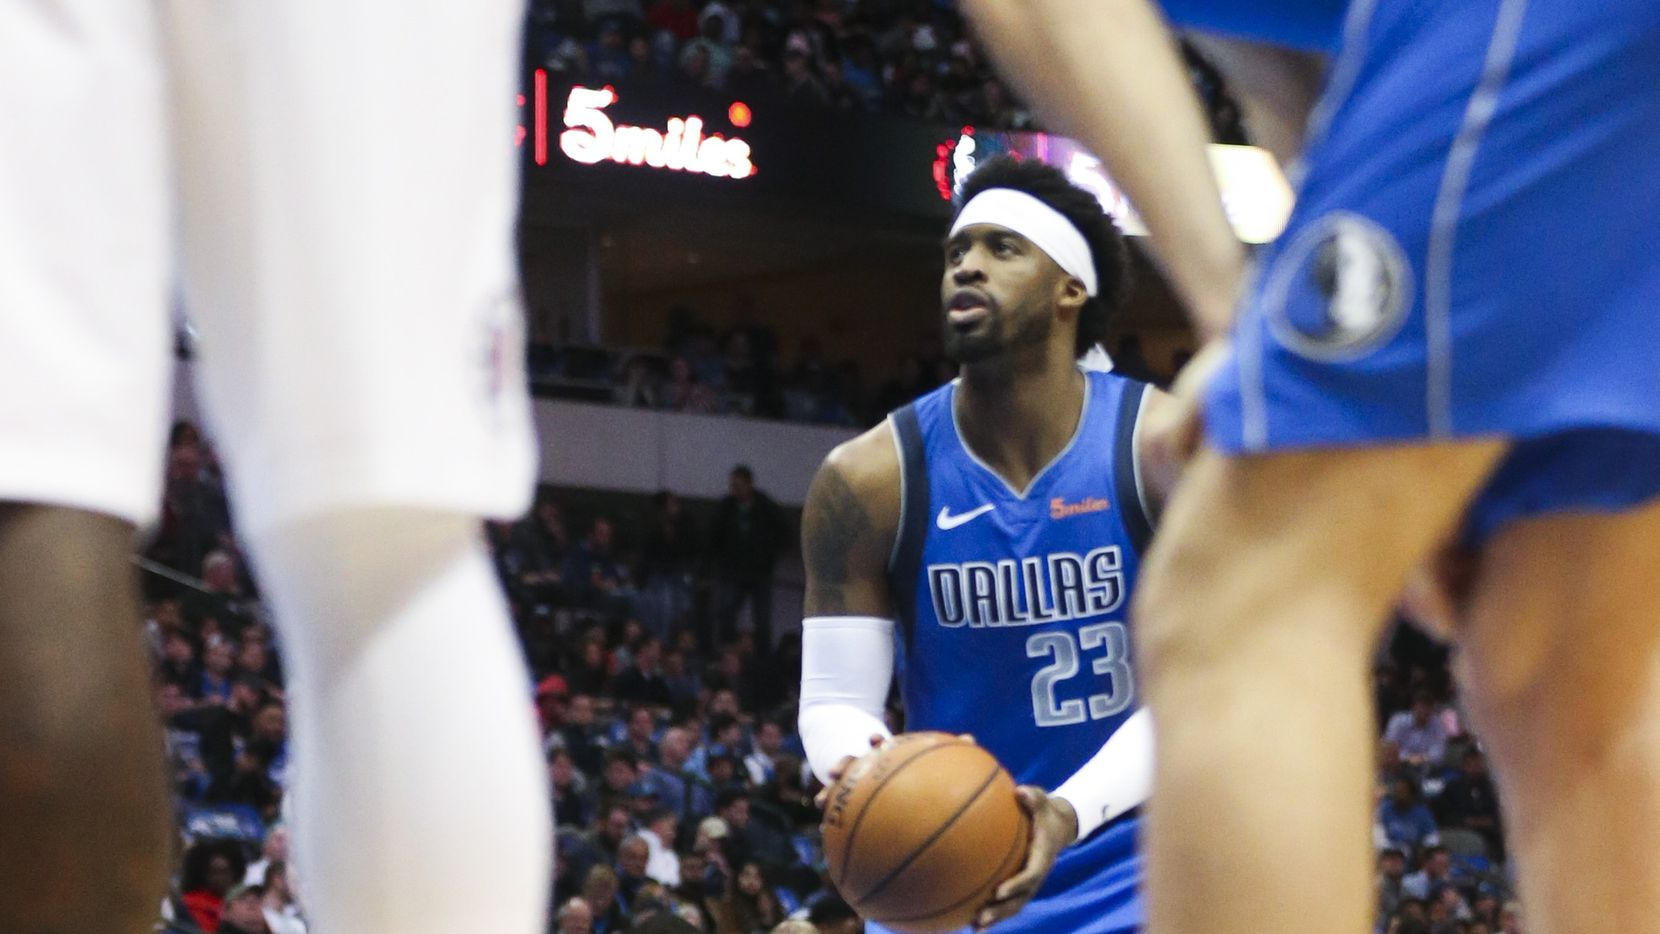 Dallas Mavericks guard Wesley Matthews (23) attempts a free-throw during an NBA basketball game at American Airline Center in Dallas on Tuesday, Jan. 22, 2019.  (Shaban Athuman/The Dallas Morning News)